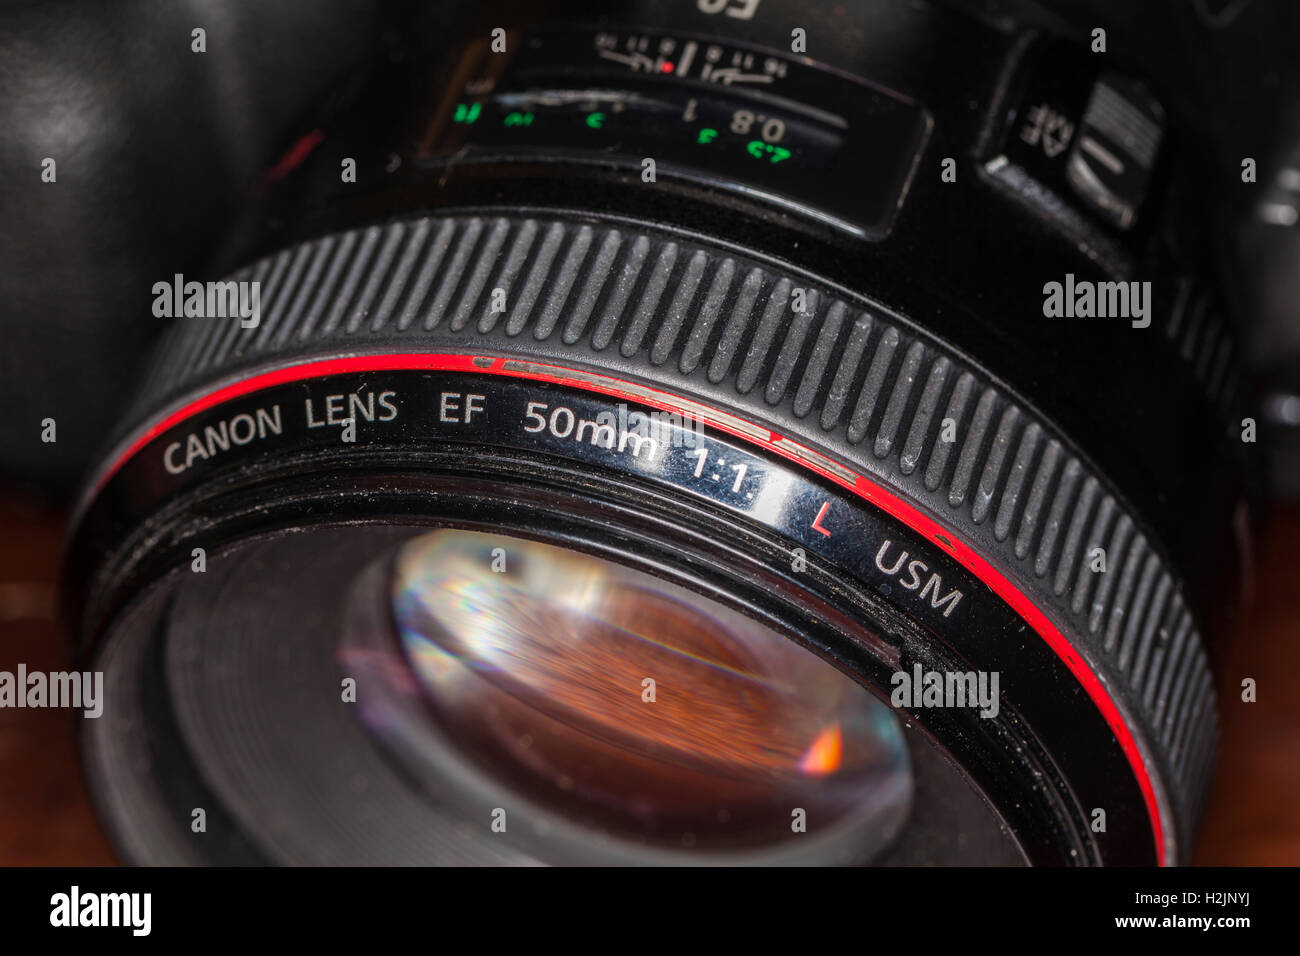 Canon EF 50mm f/1.2 lens showing wear and tear on lens ring. - Stock Image